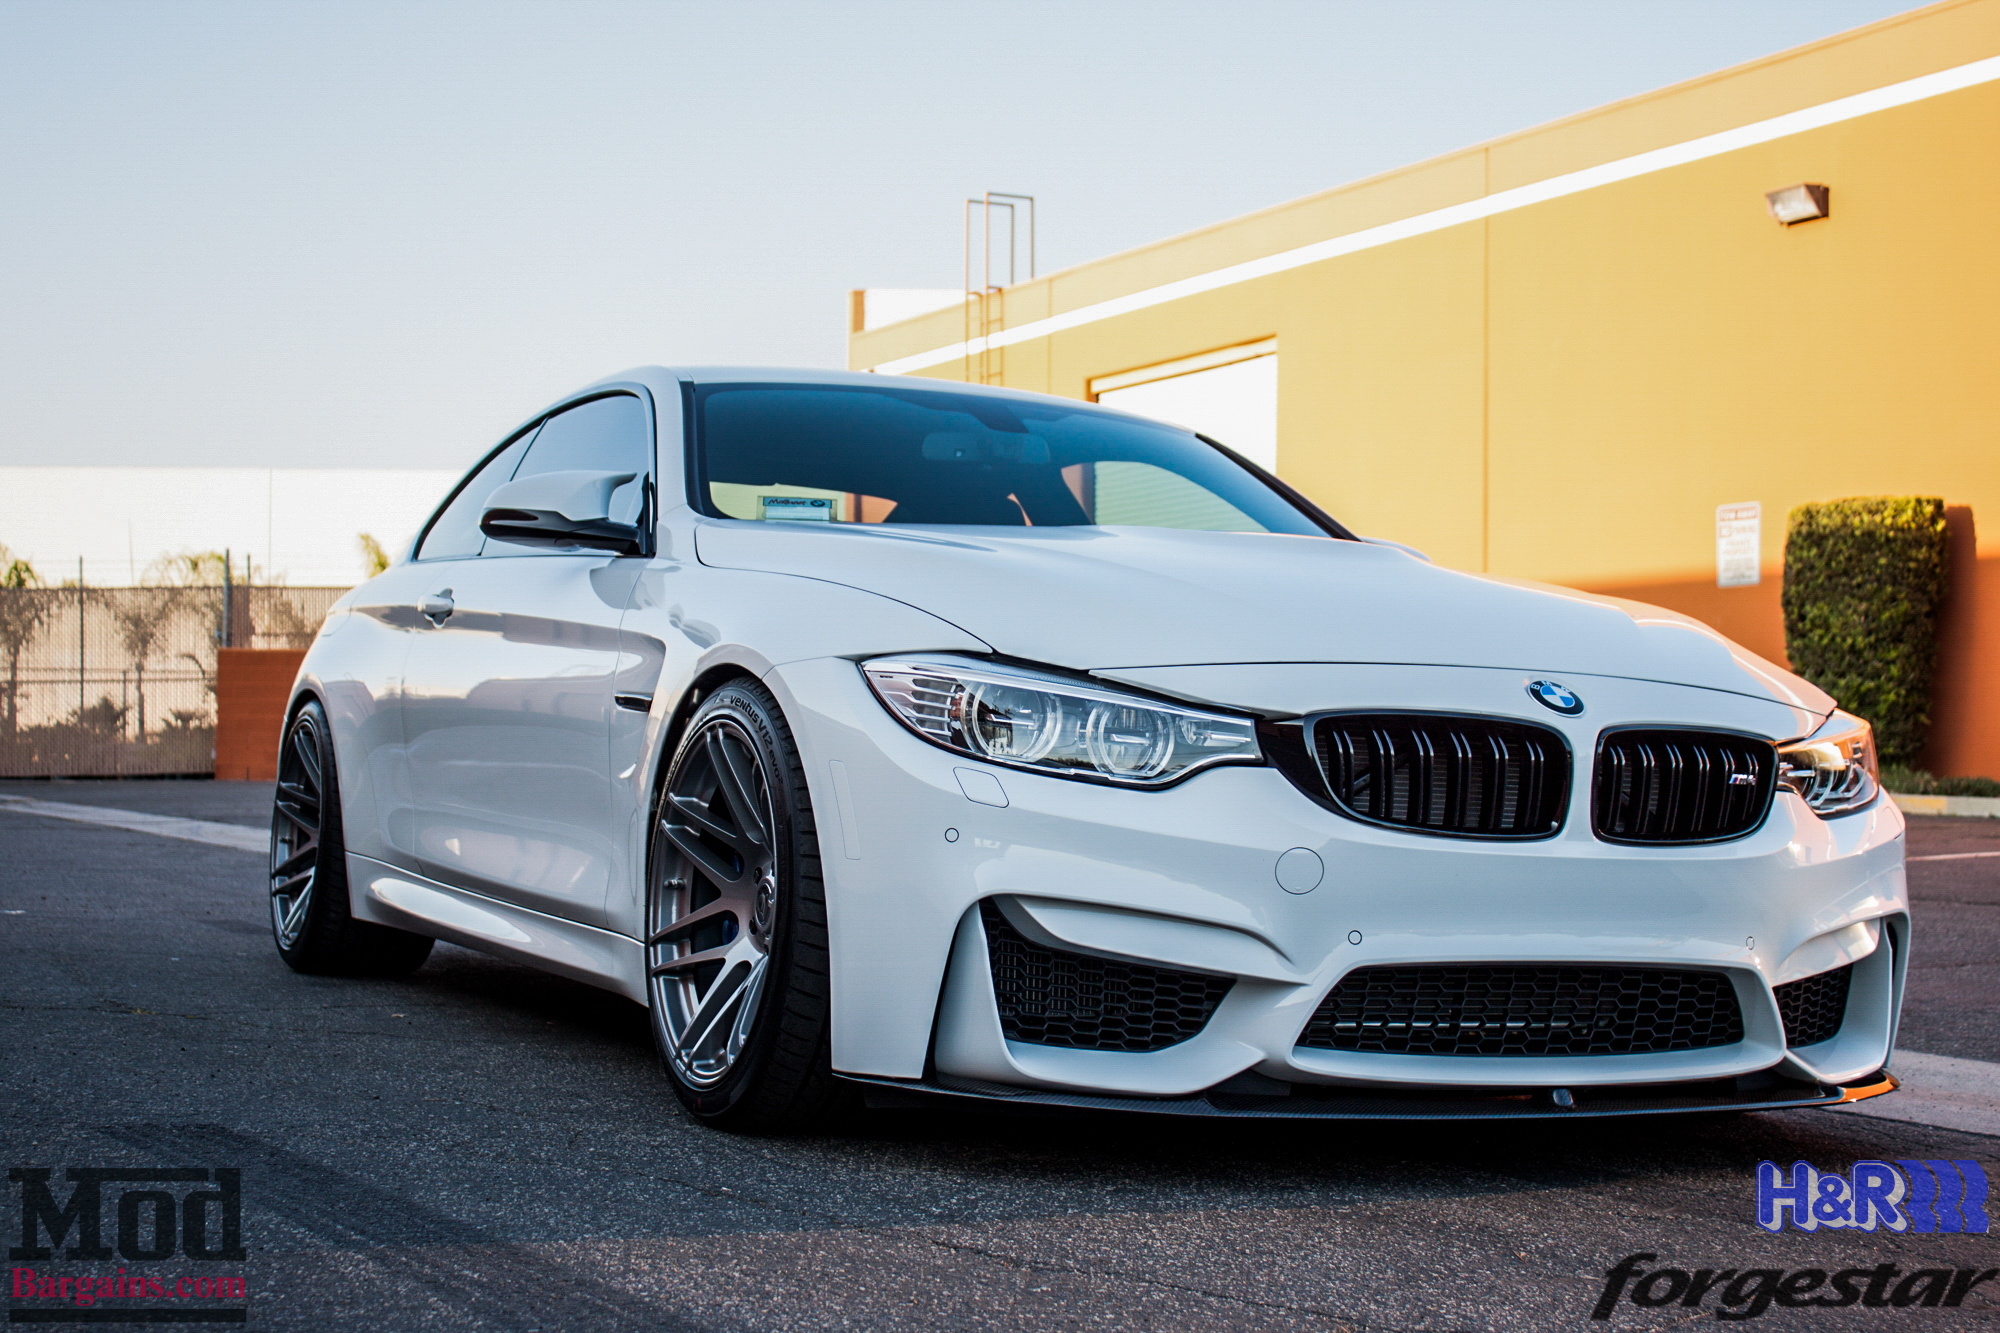 F82 Bmw M4 Gets Remus Exhaust F14s 2b Show Ready